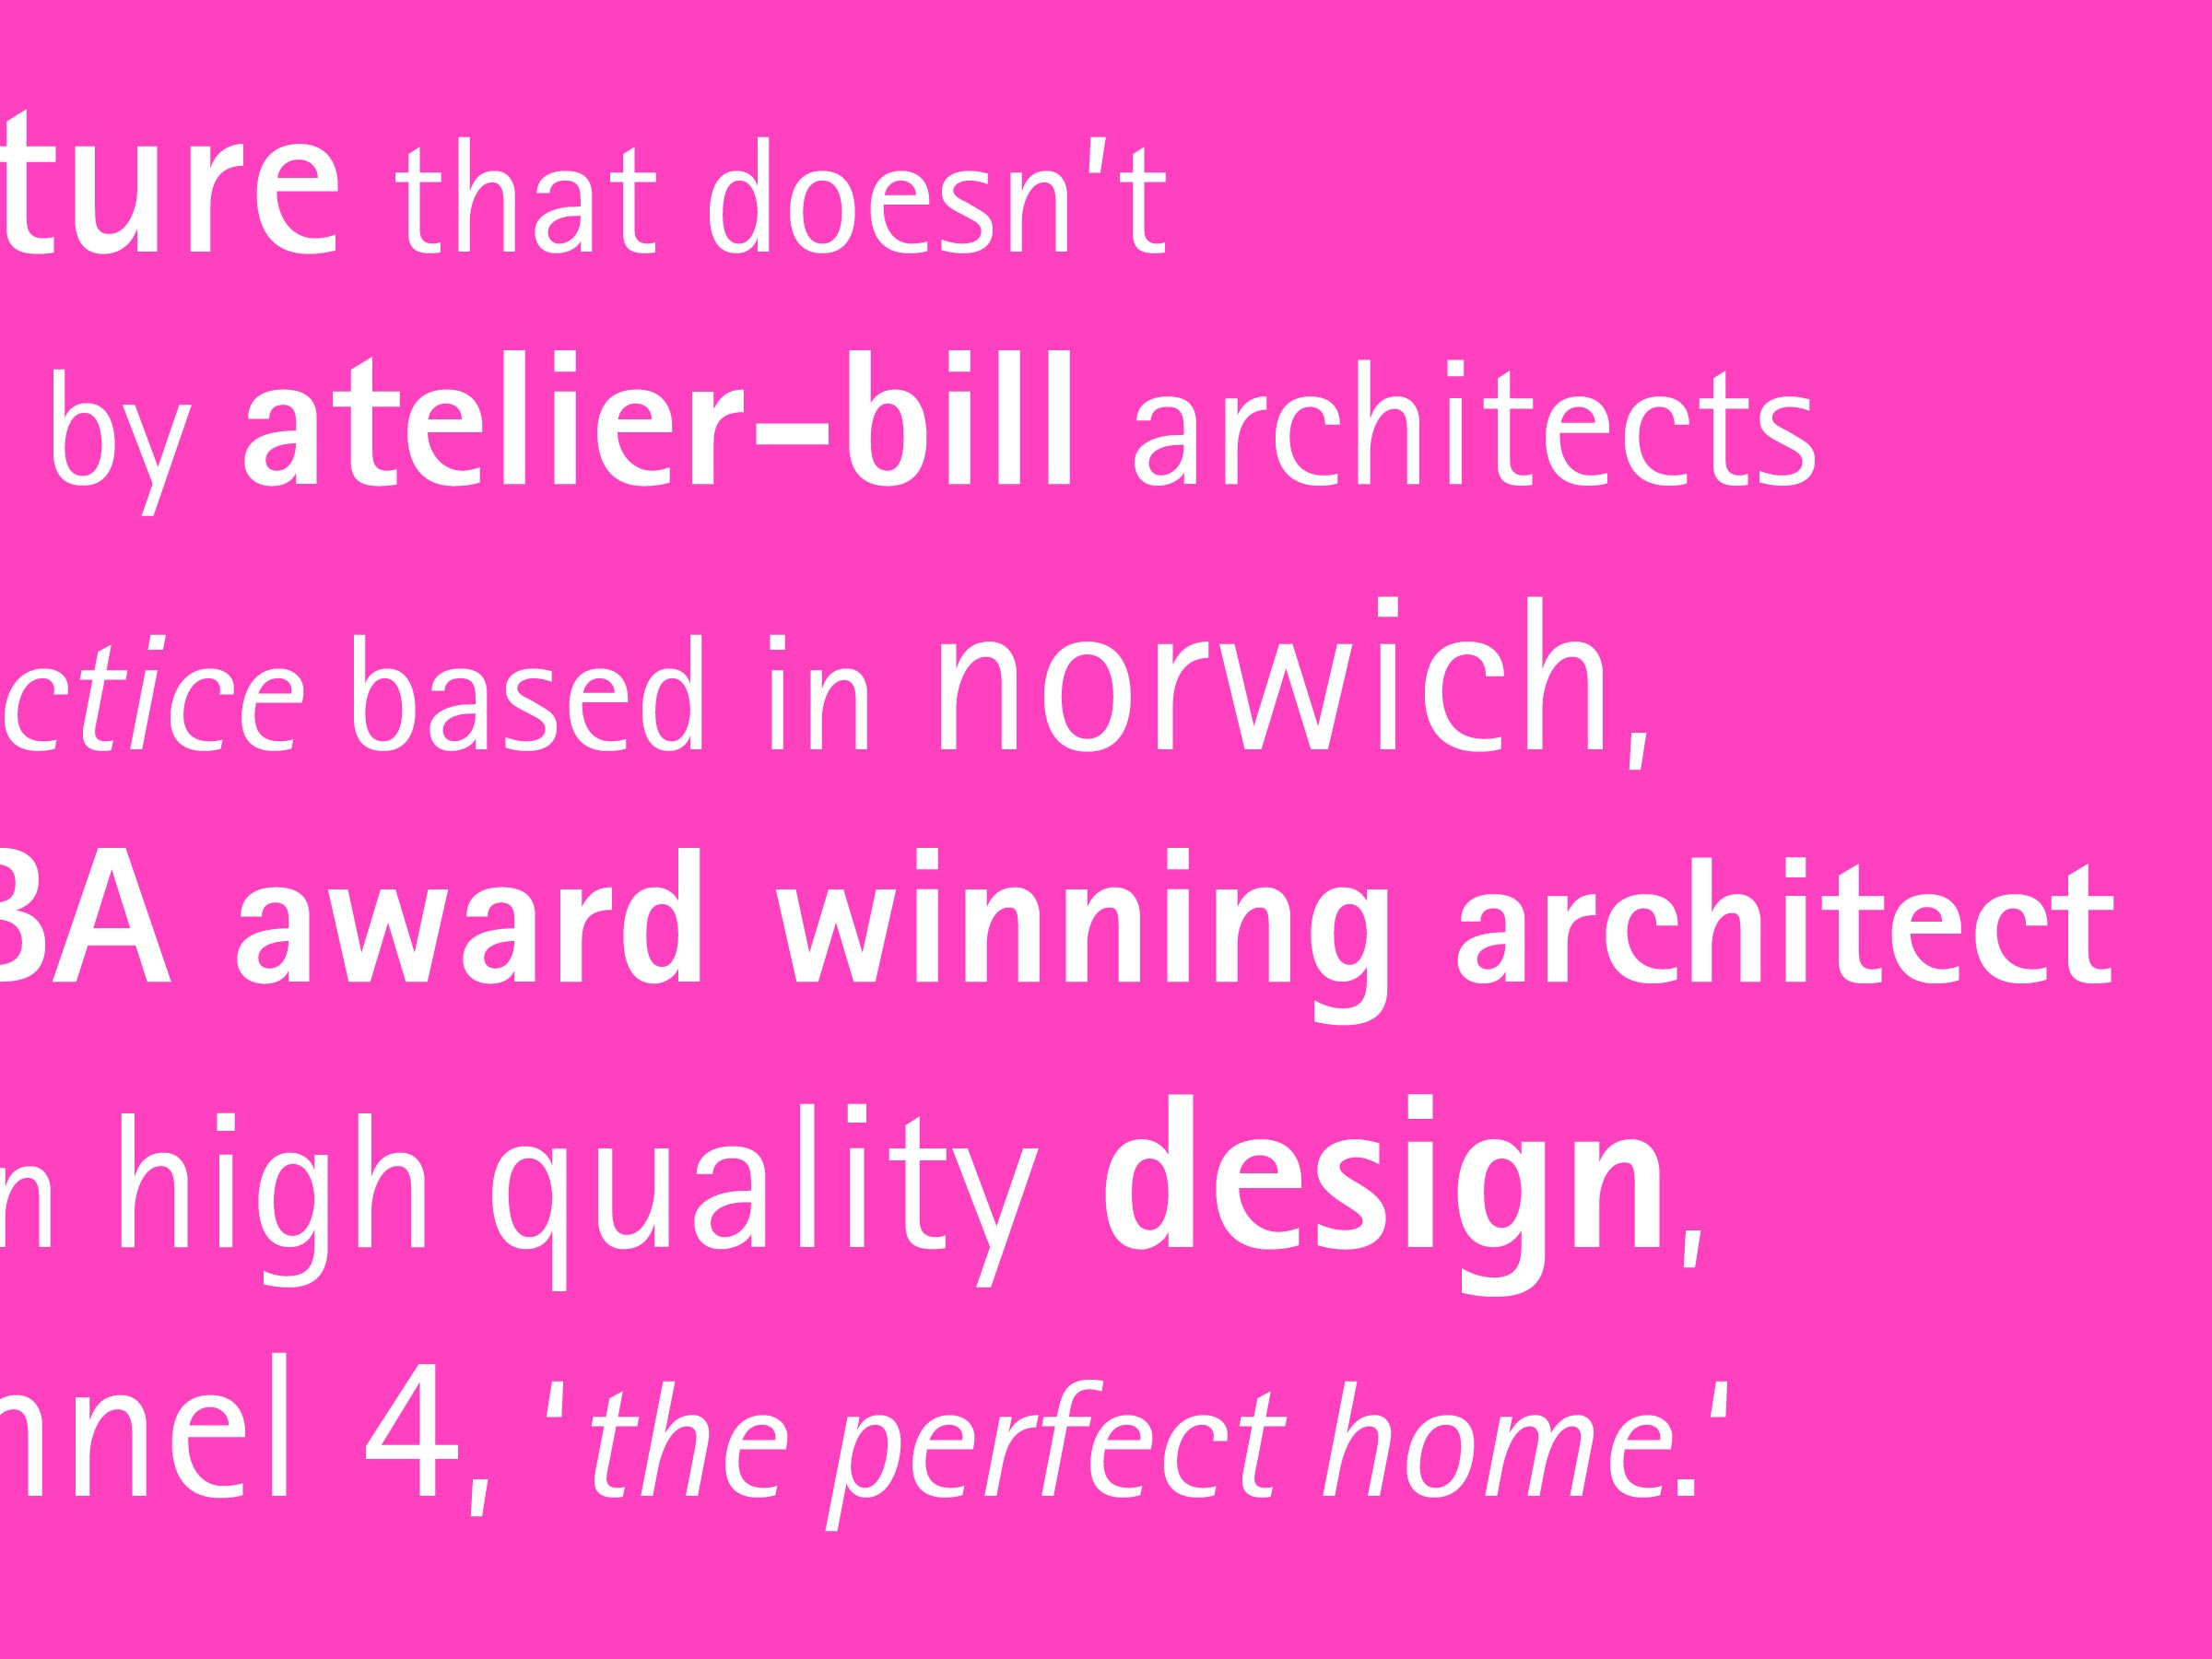 quality architecture that doesn't cost the earth by atelier bill architects.  an architecture practice based in norwich, established by a RIBA award willing architect engaged in high quality design, & as featured on channel 4, 'the perfect home'.